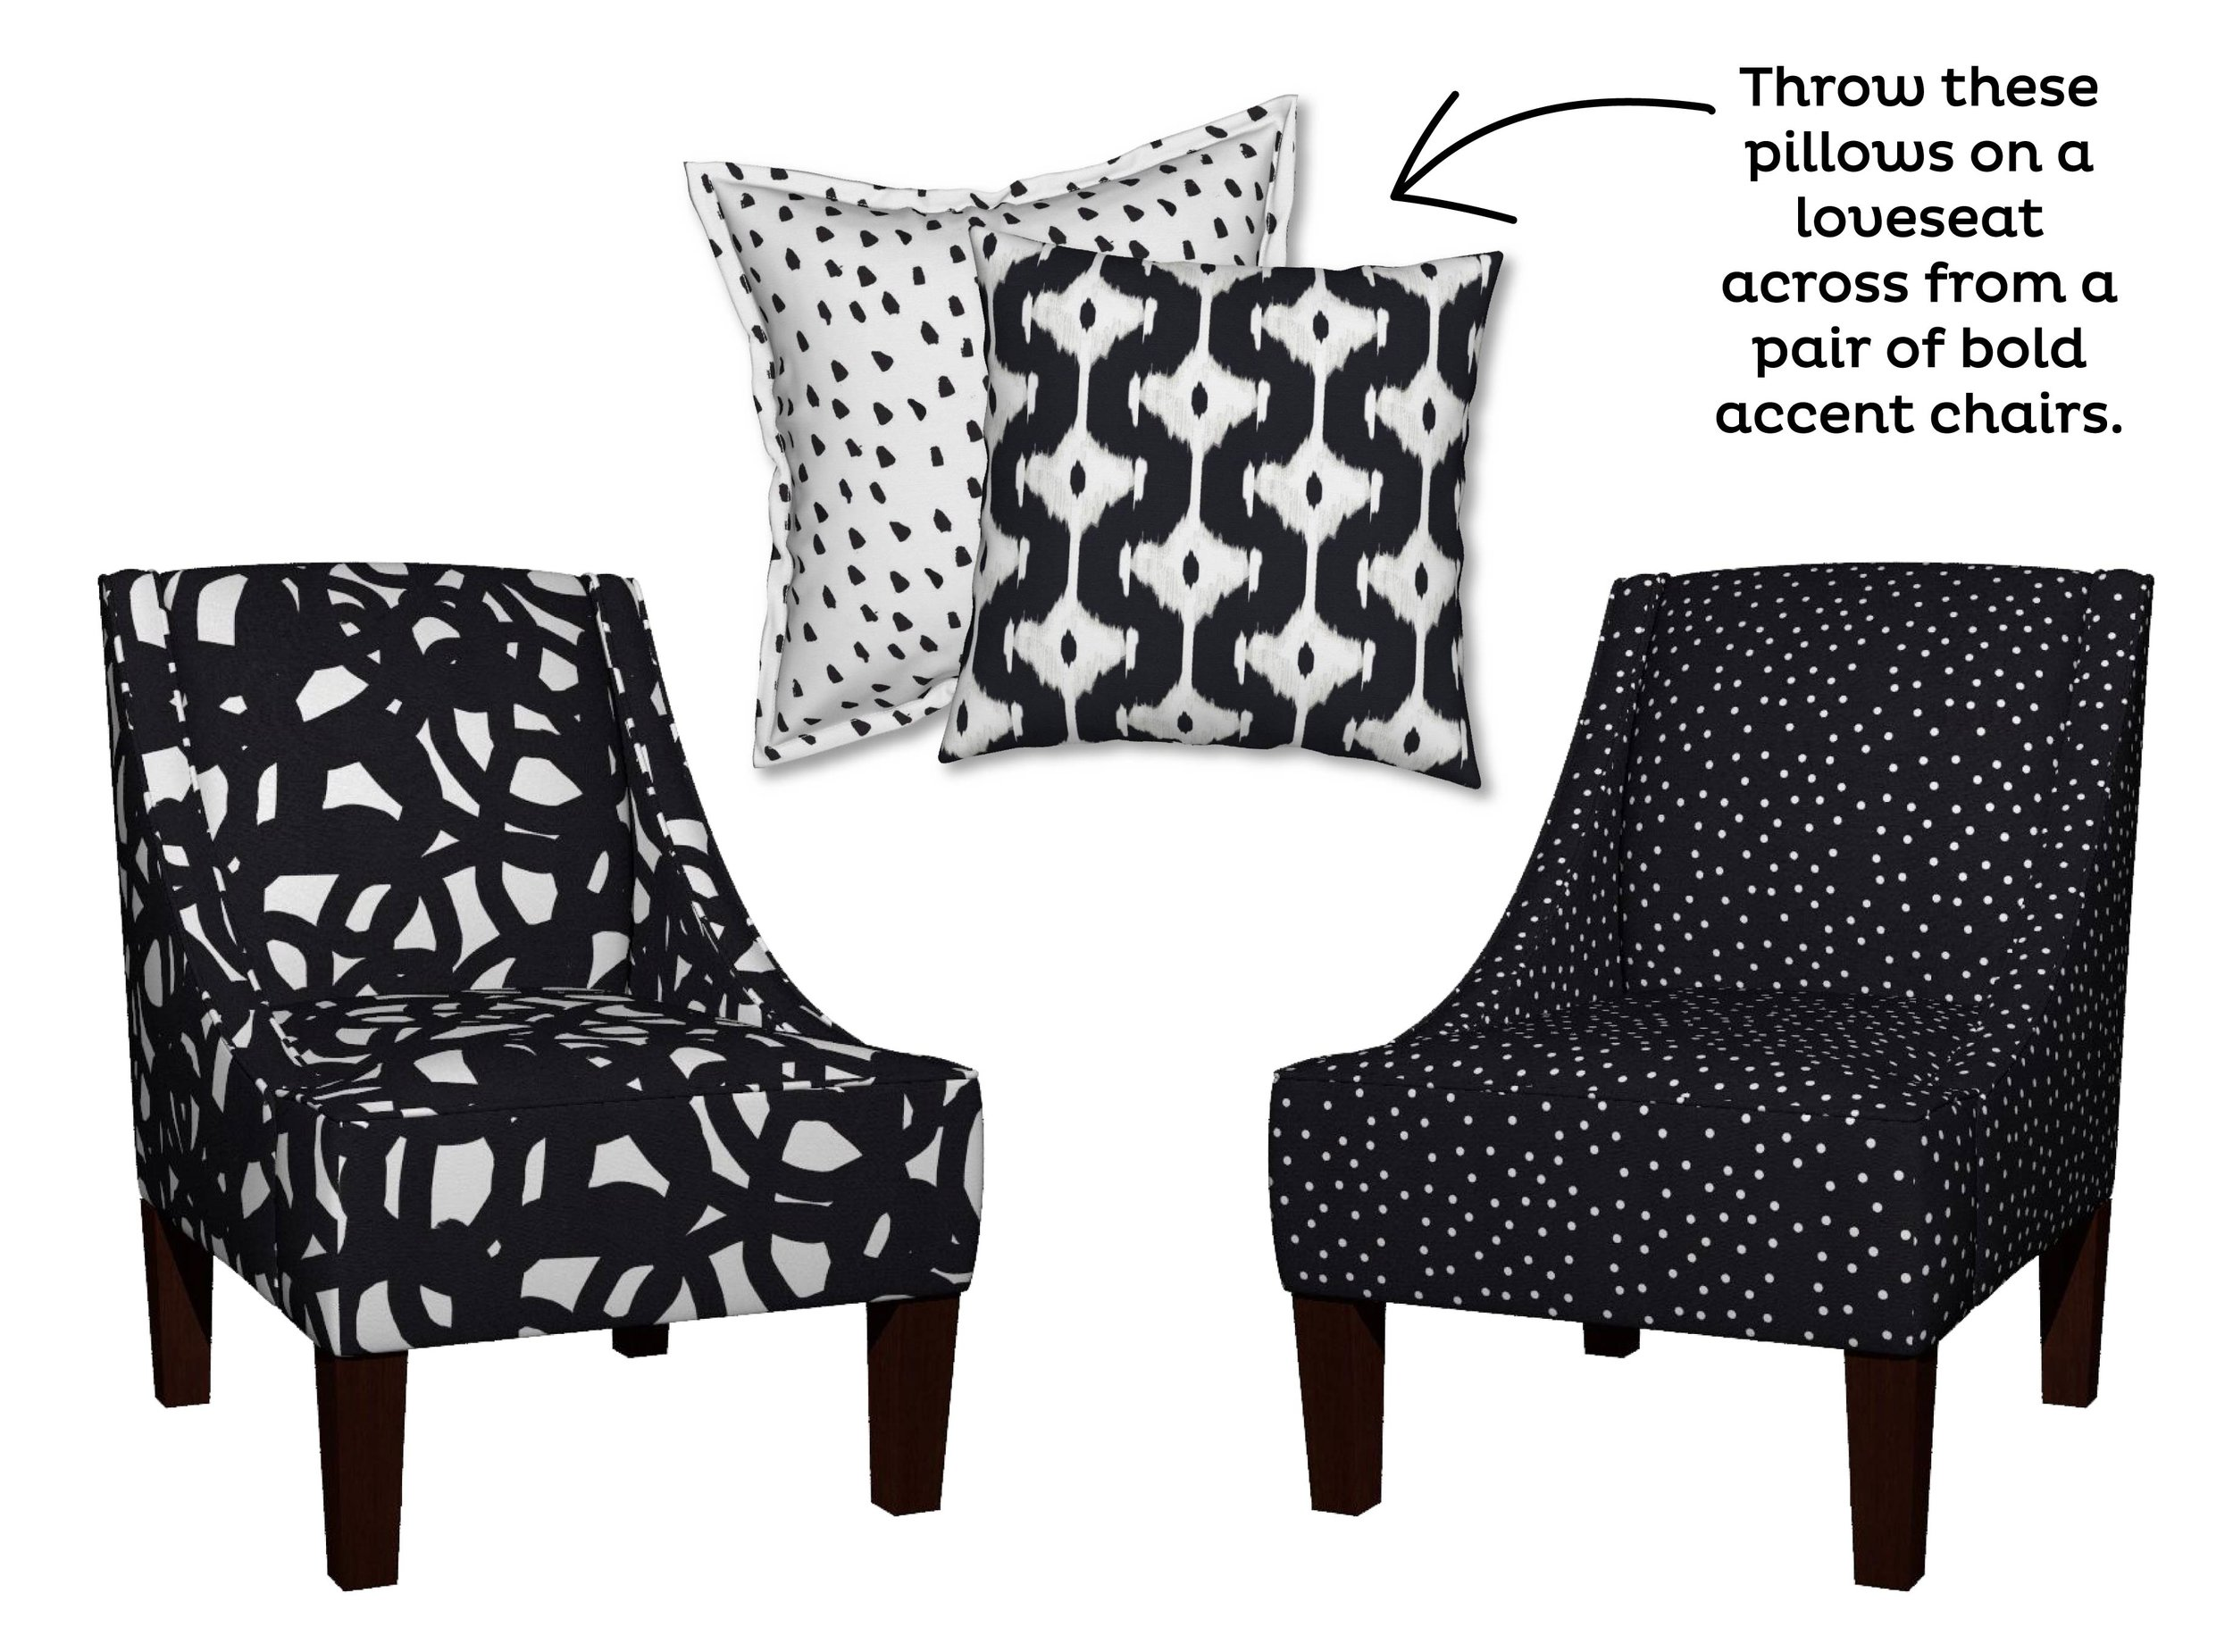 Freestyle in Black Venda Chair  by  Domesticate ;  Painted Black Dots on White Serama Pillow  by  WeeGallery ;  Ikat Offset Diamond Catalan Pillow  by  Fable_Design ;  Polka Dot White on Black Venda Chair  by   PencilMeIn